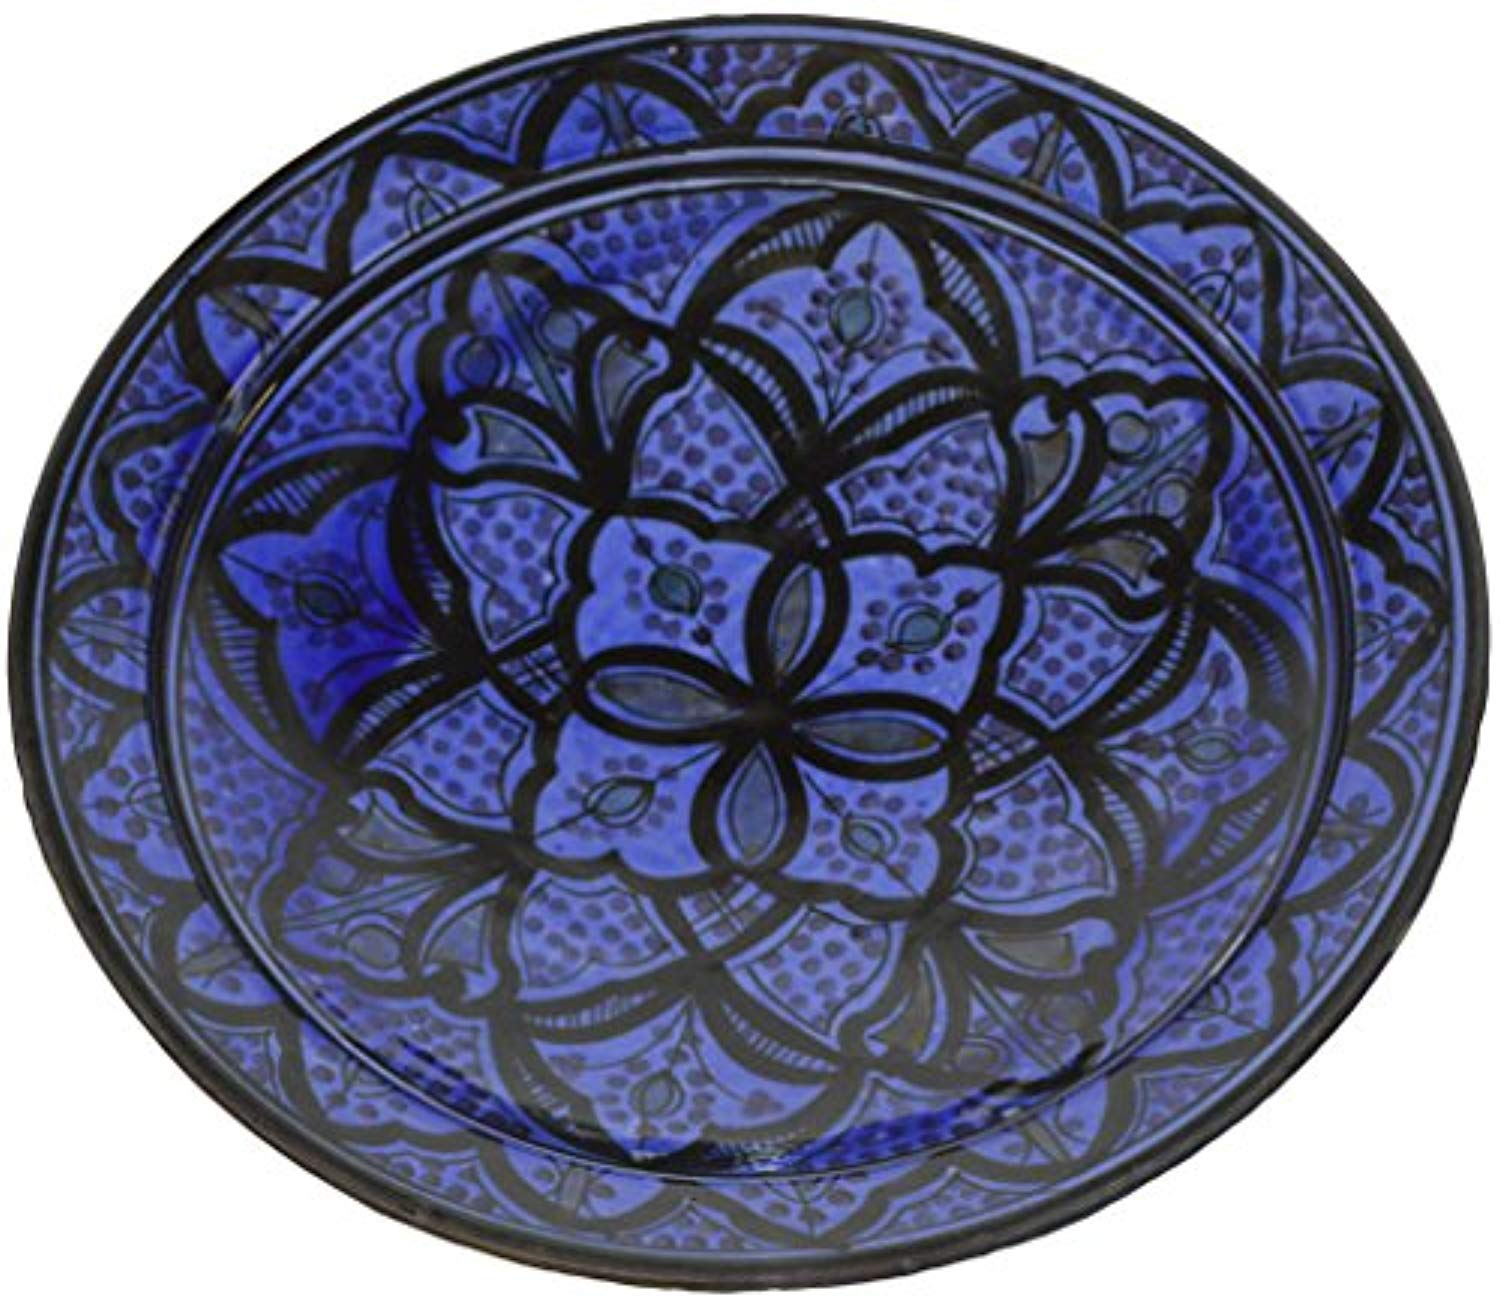 Ceramic Plates Moroccan Safi Serving Plate Large 12 Inches Round - Ufumbuzi - Home